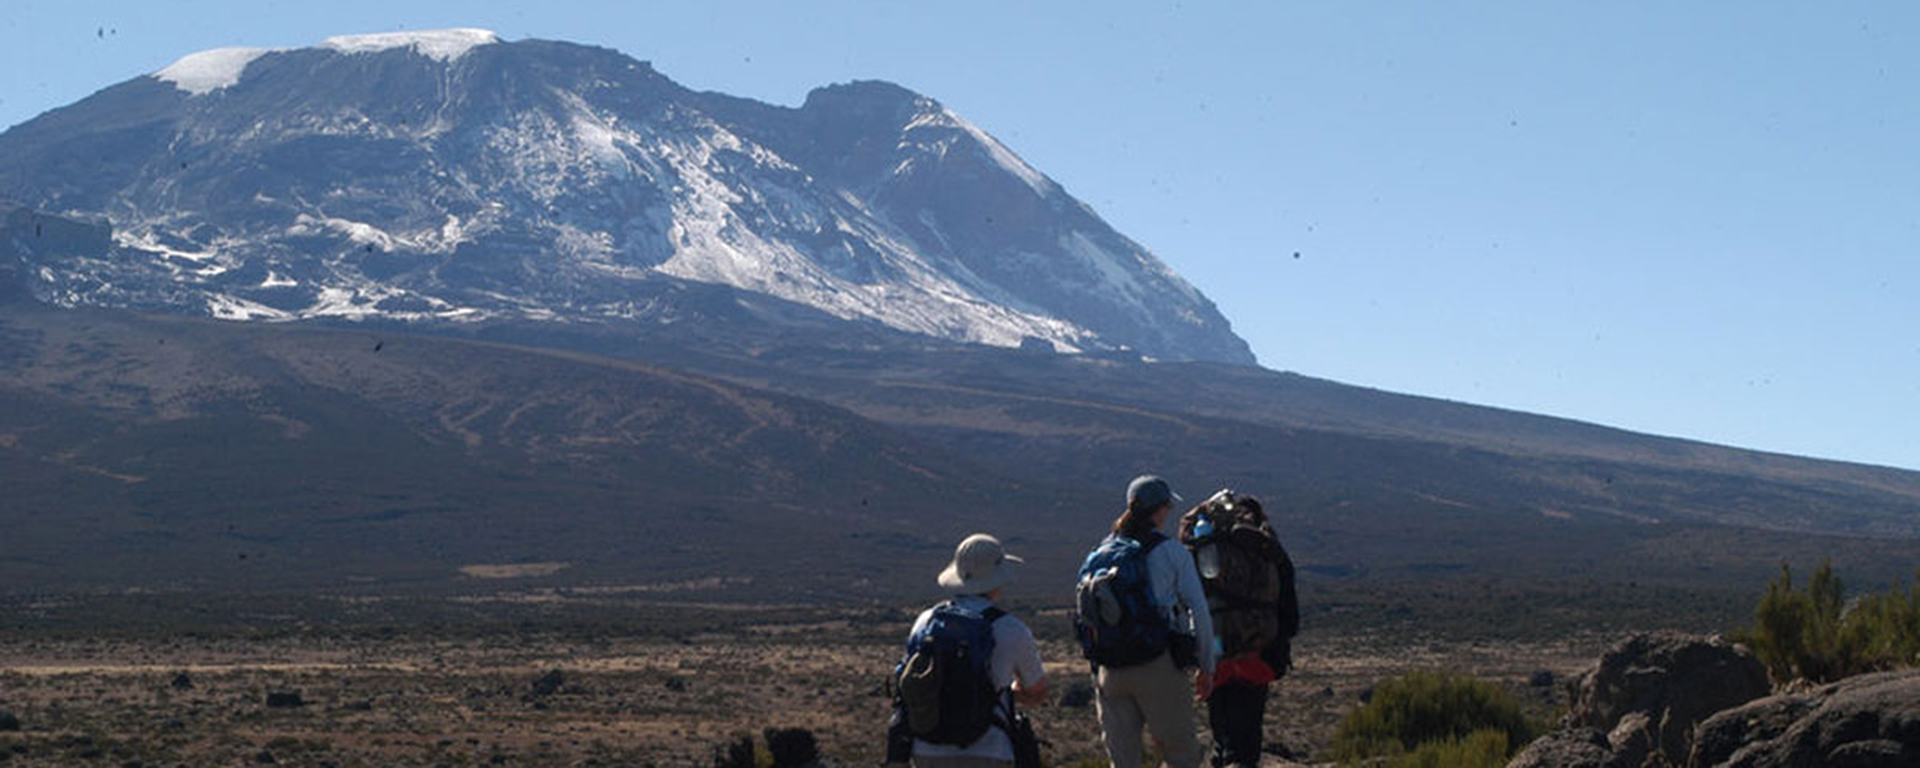 It looks deceptively easy from a distance but don't under-estimate the thinning air as you ascend Kili.